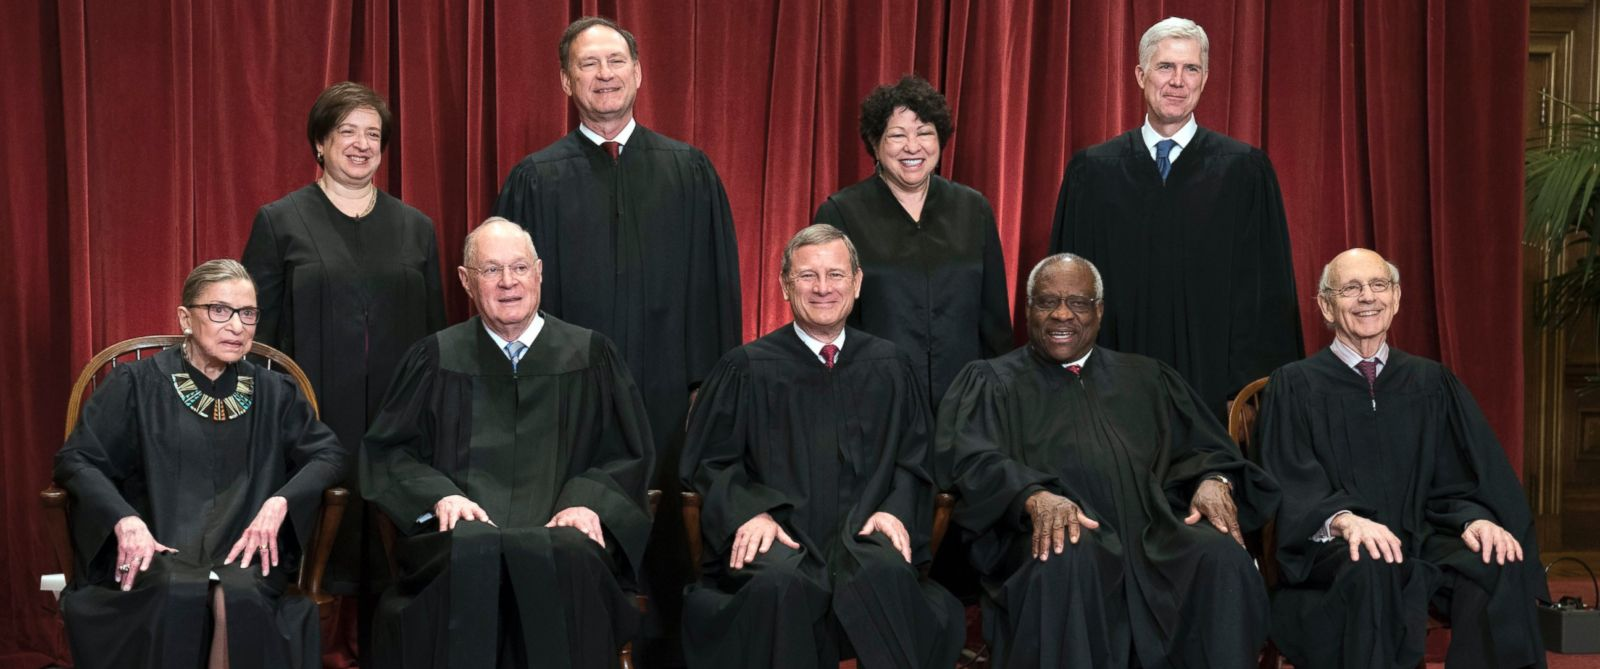 the supreme court justices A list of the 5 most important conservative supreme court justices in united states history, including justices samuel alito and clarence thomas.